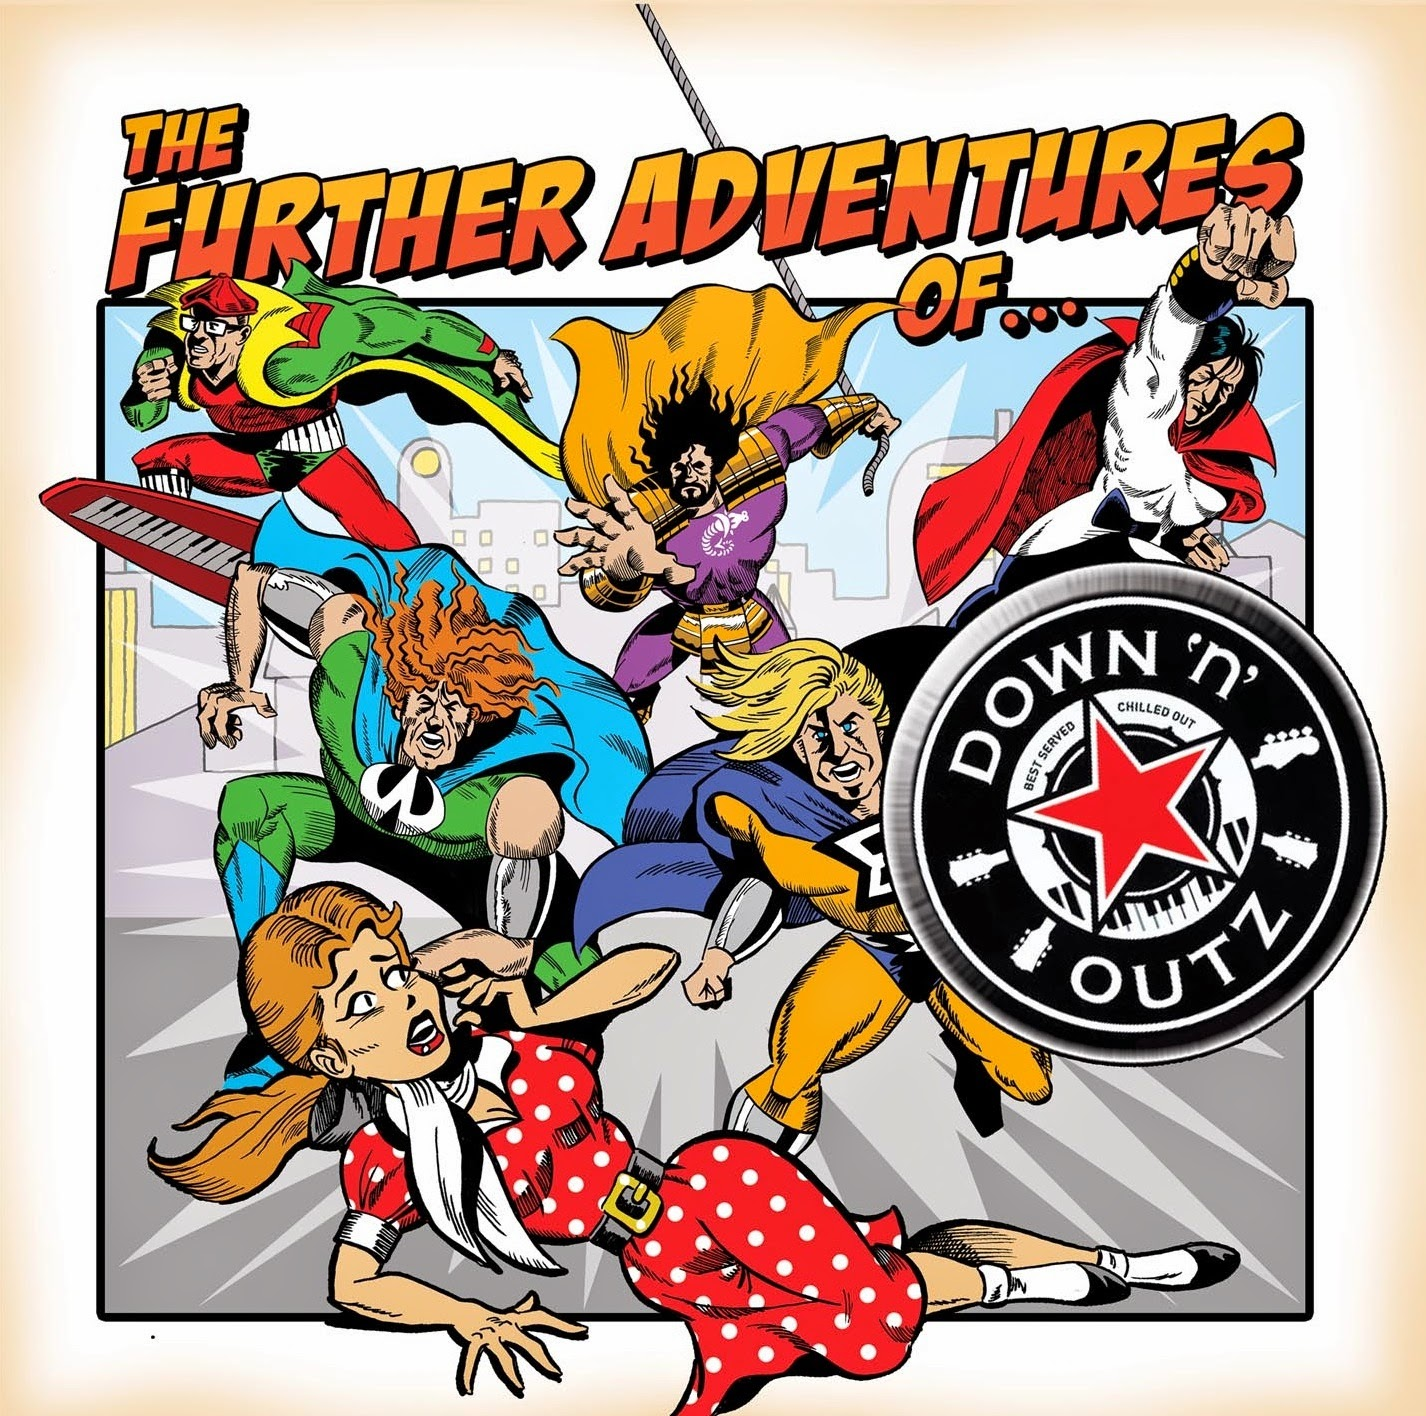 Down 'n' Outz - The Further Adventures Of…